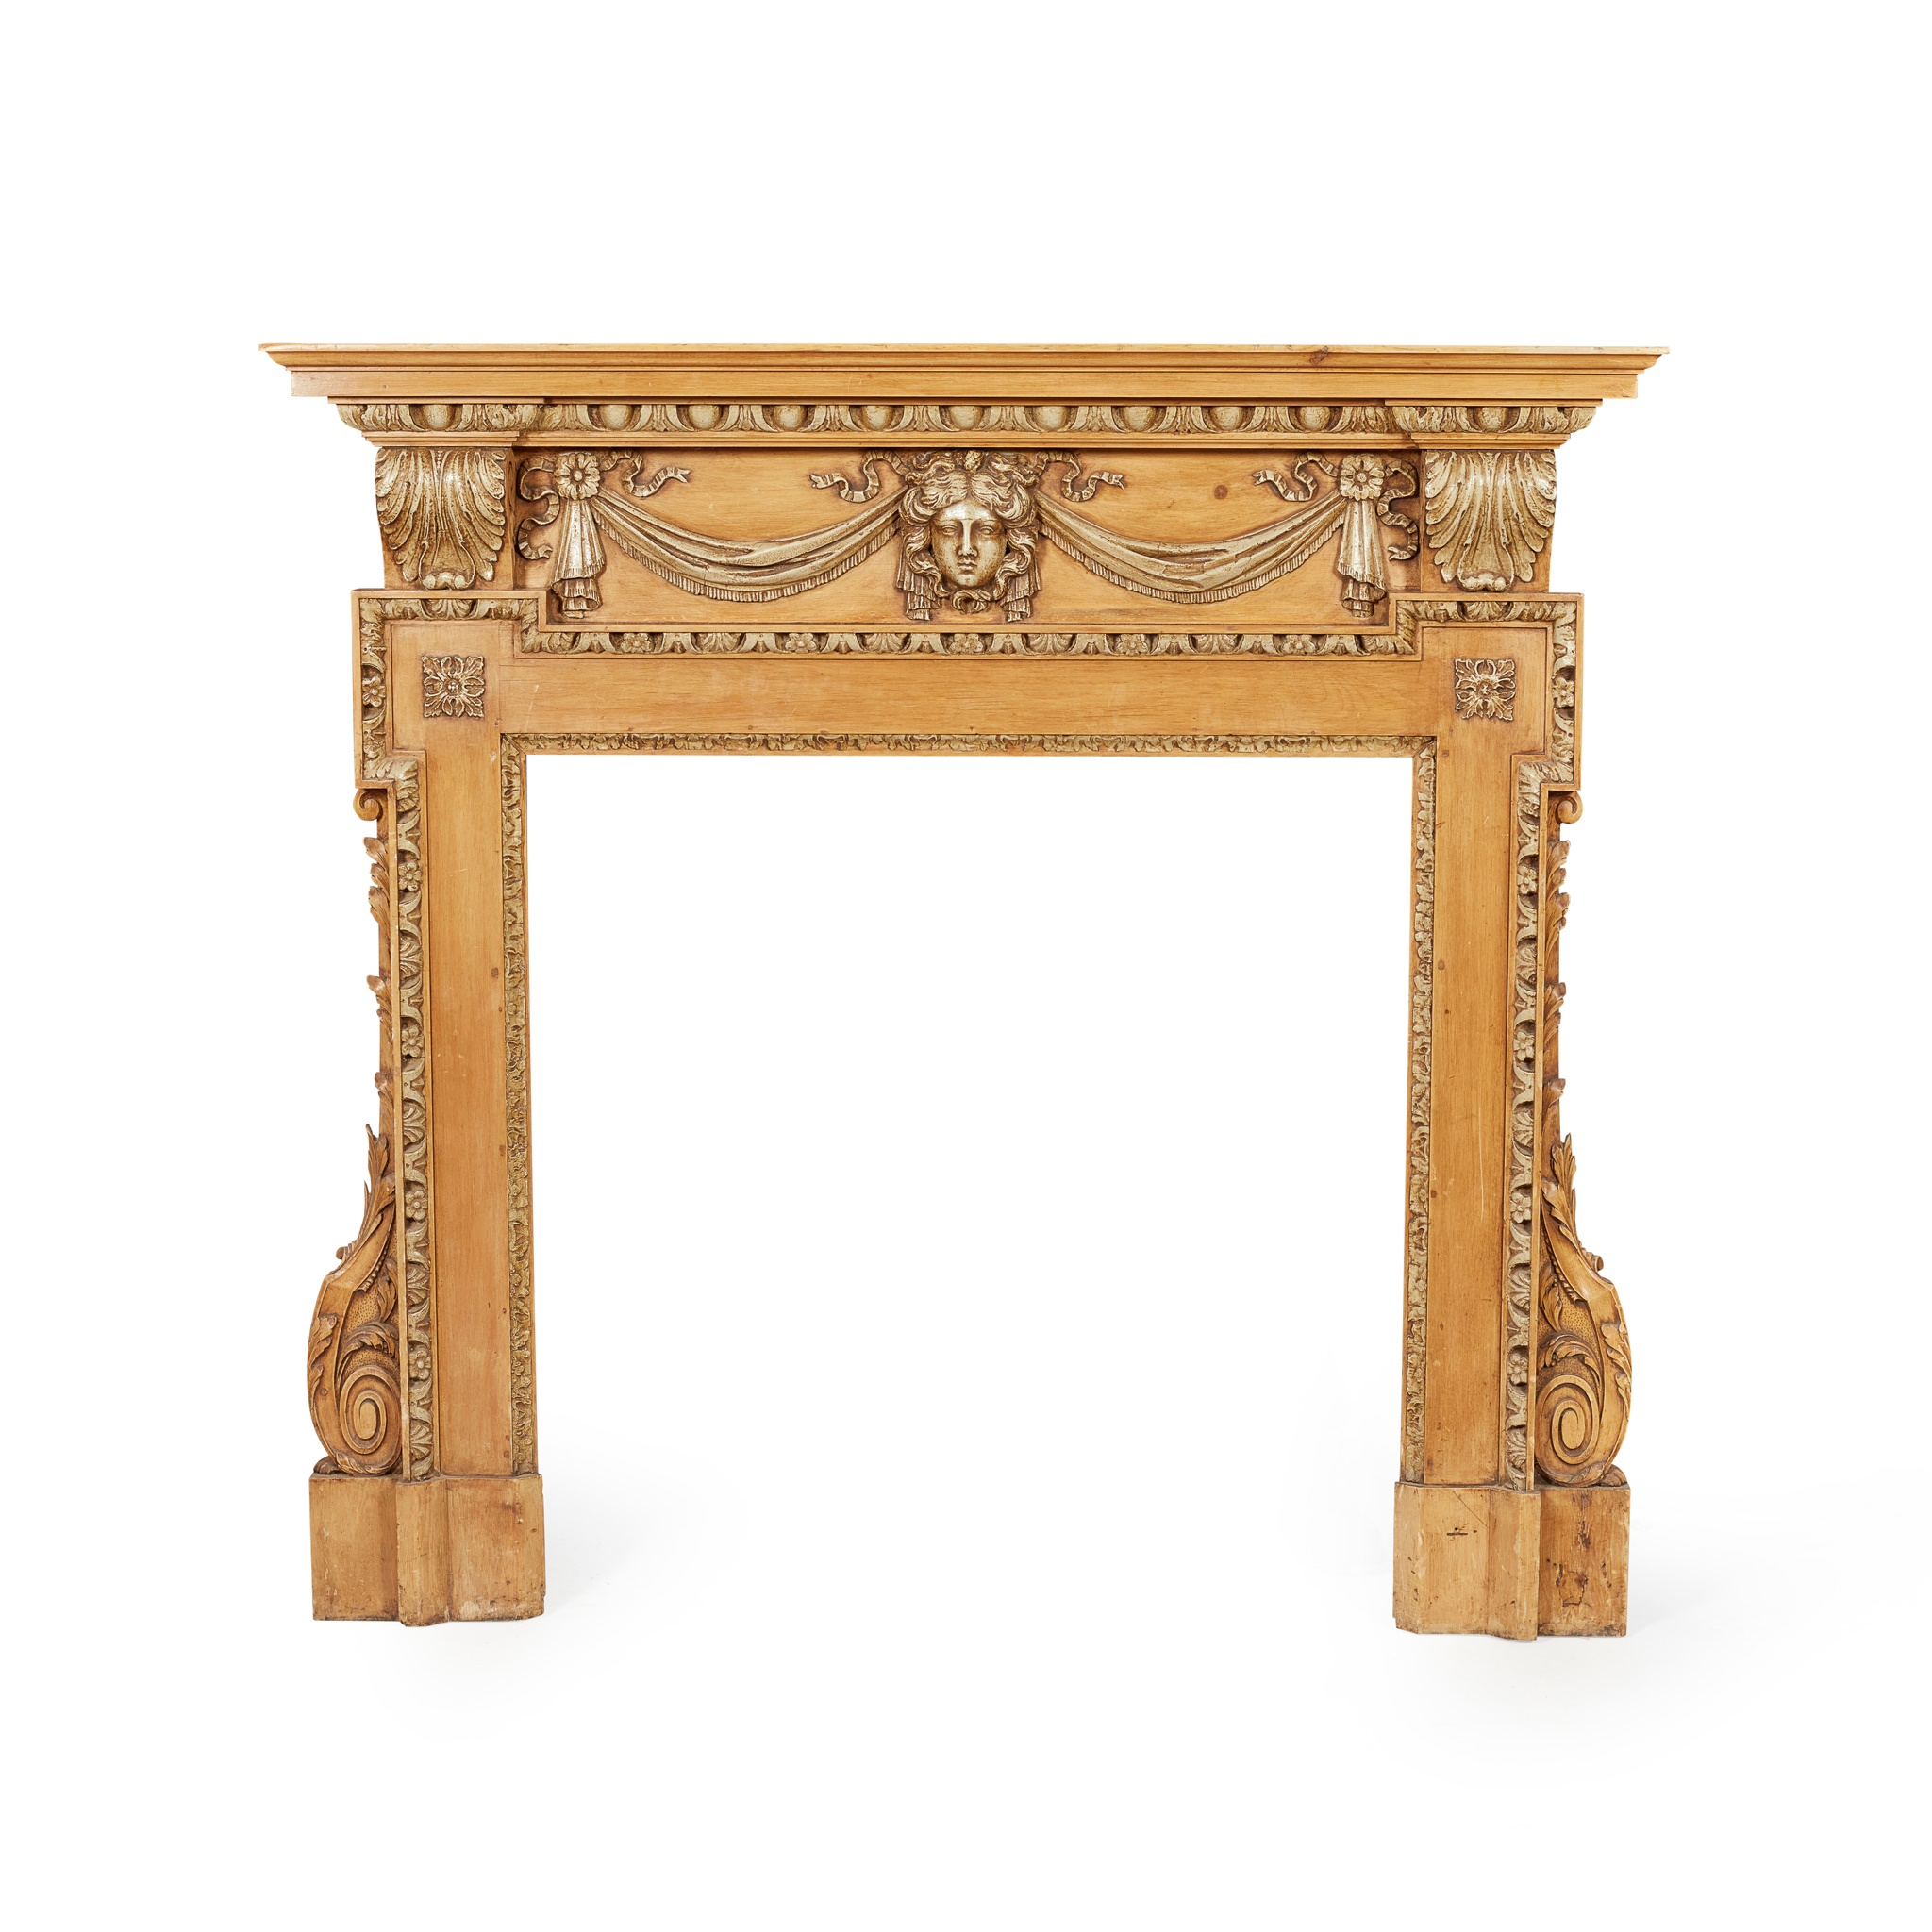 GEORGE II STYLE CARVED AND PAINTED PINE FIRE SURROUND LATE 19TH CENTURY